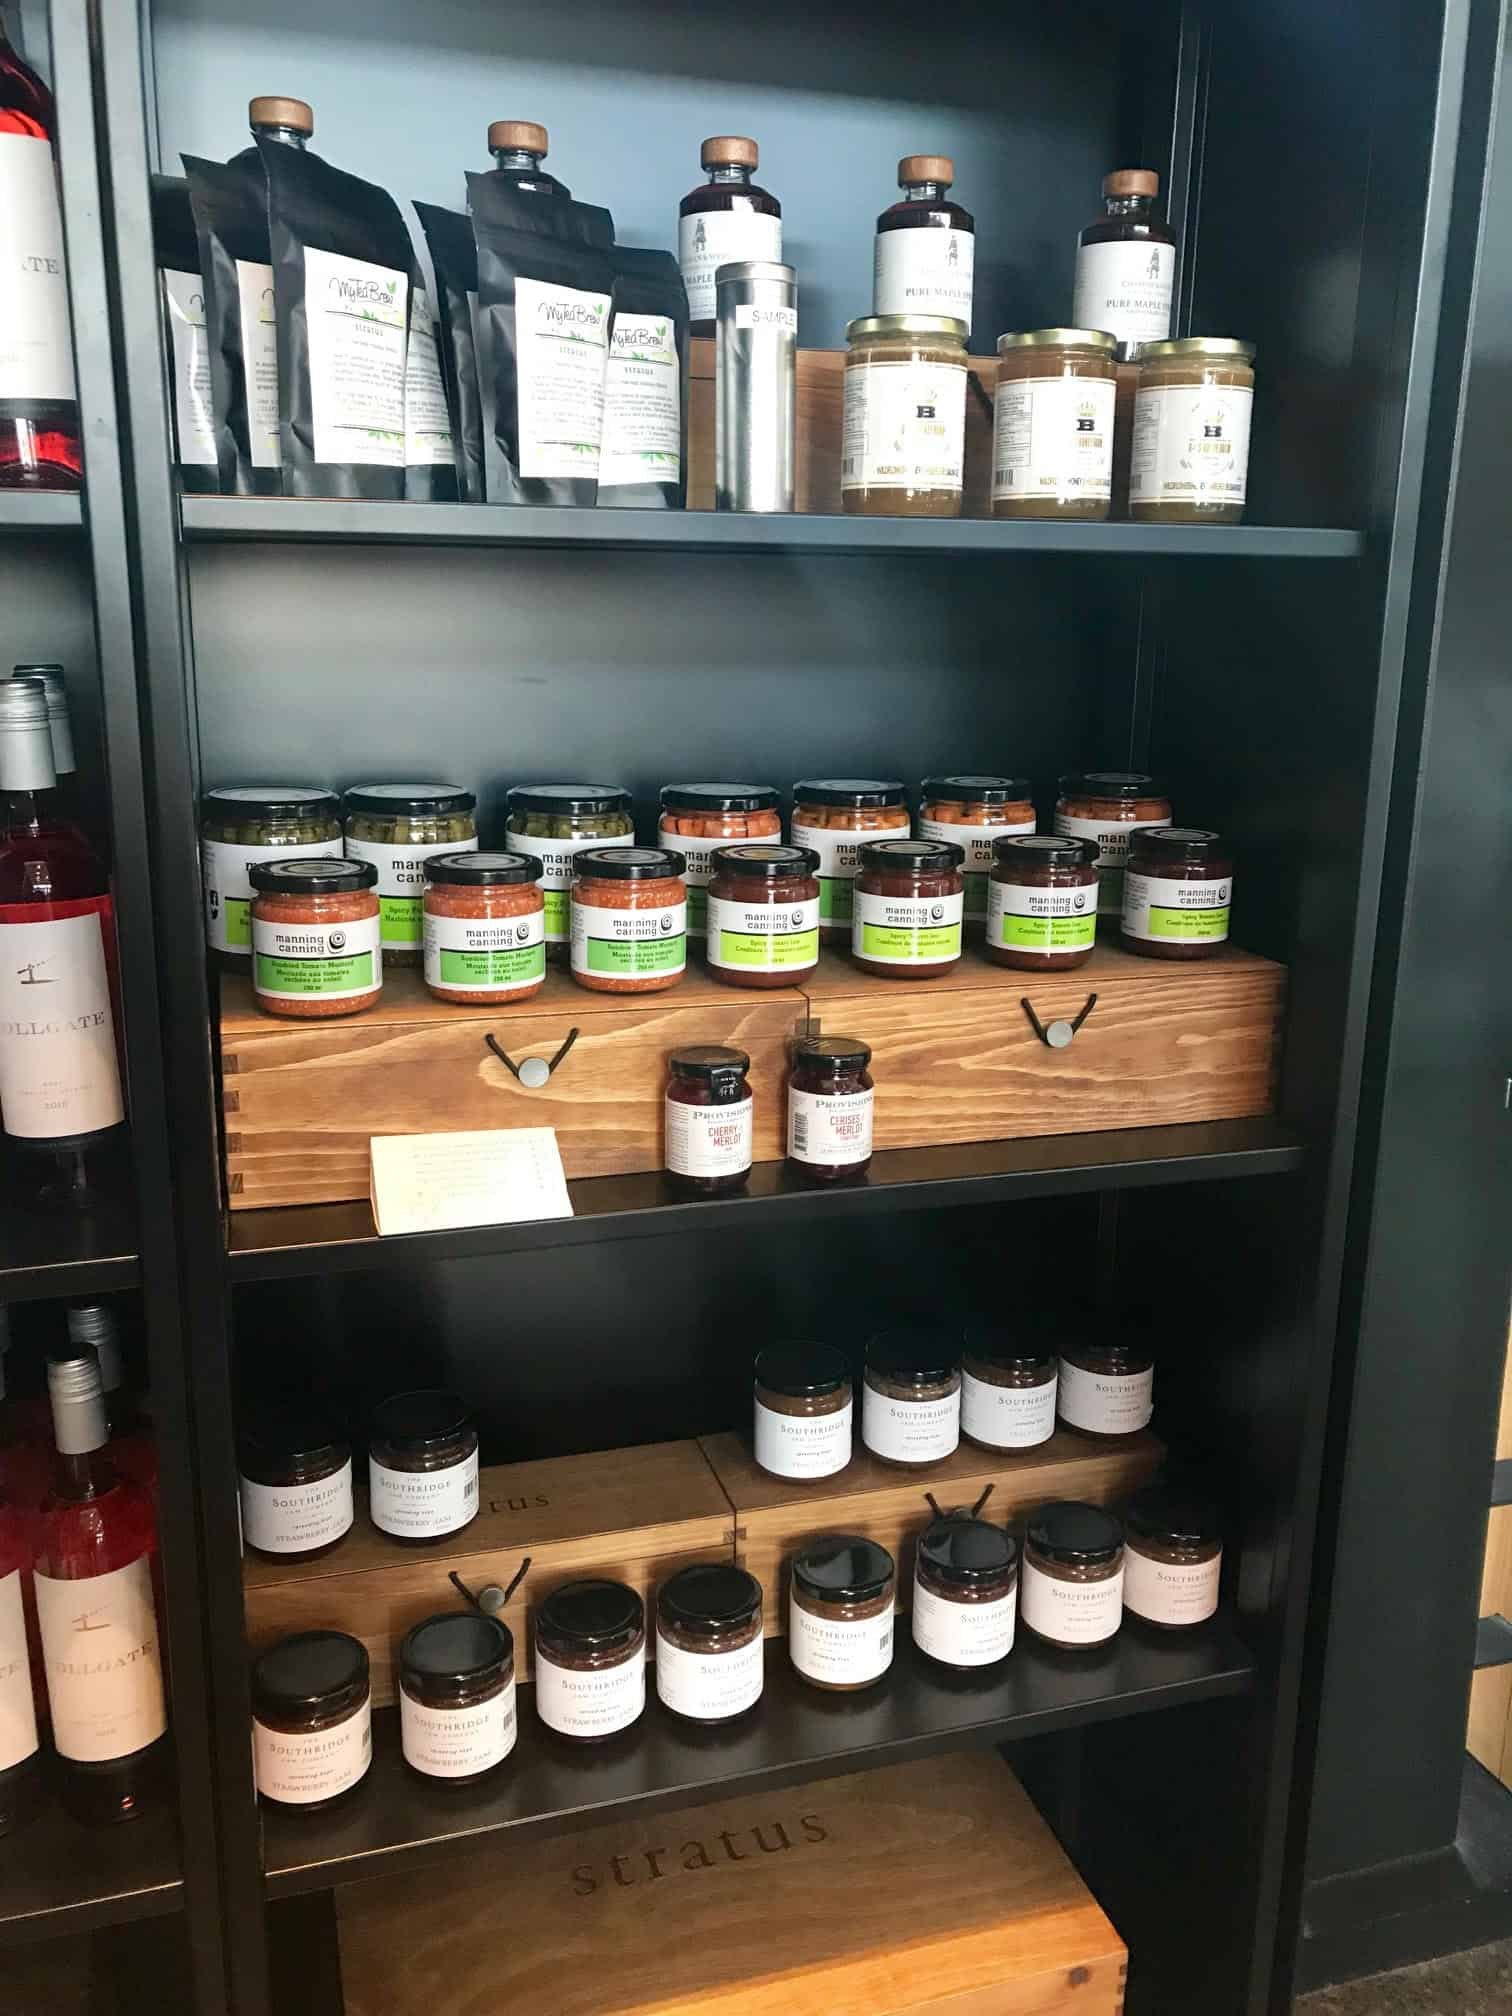 Shelf of products for sale by Manning canning